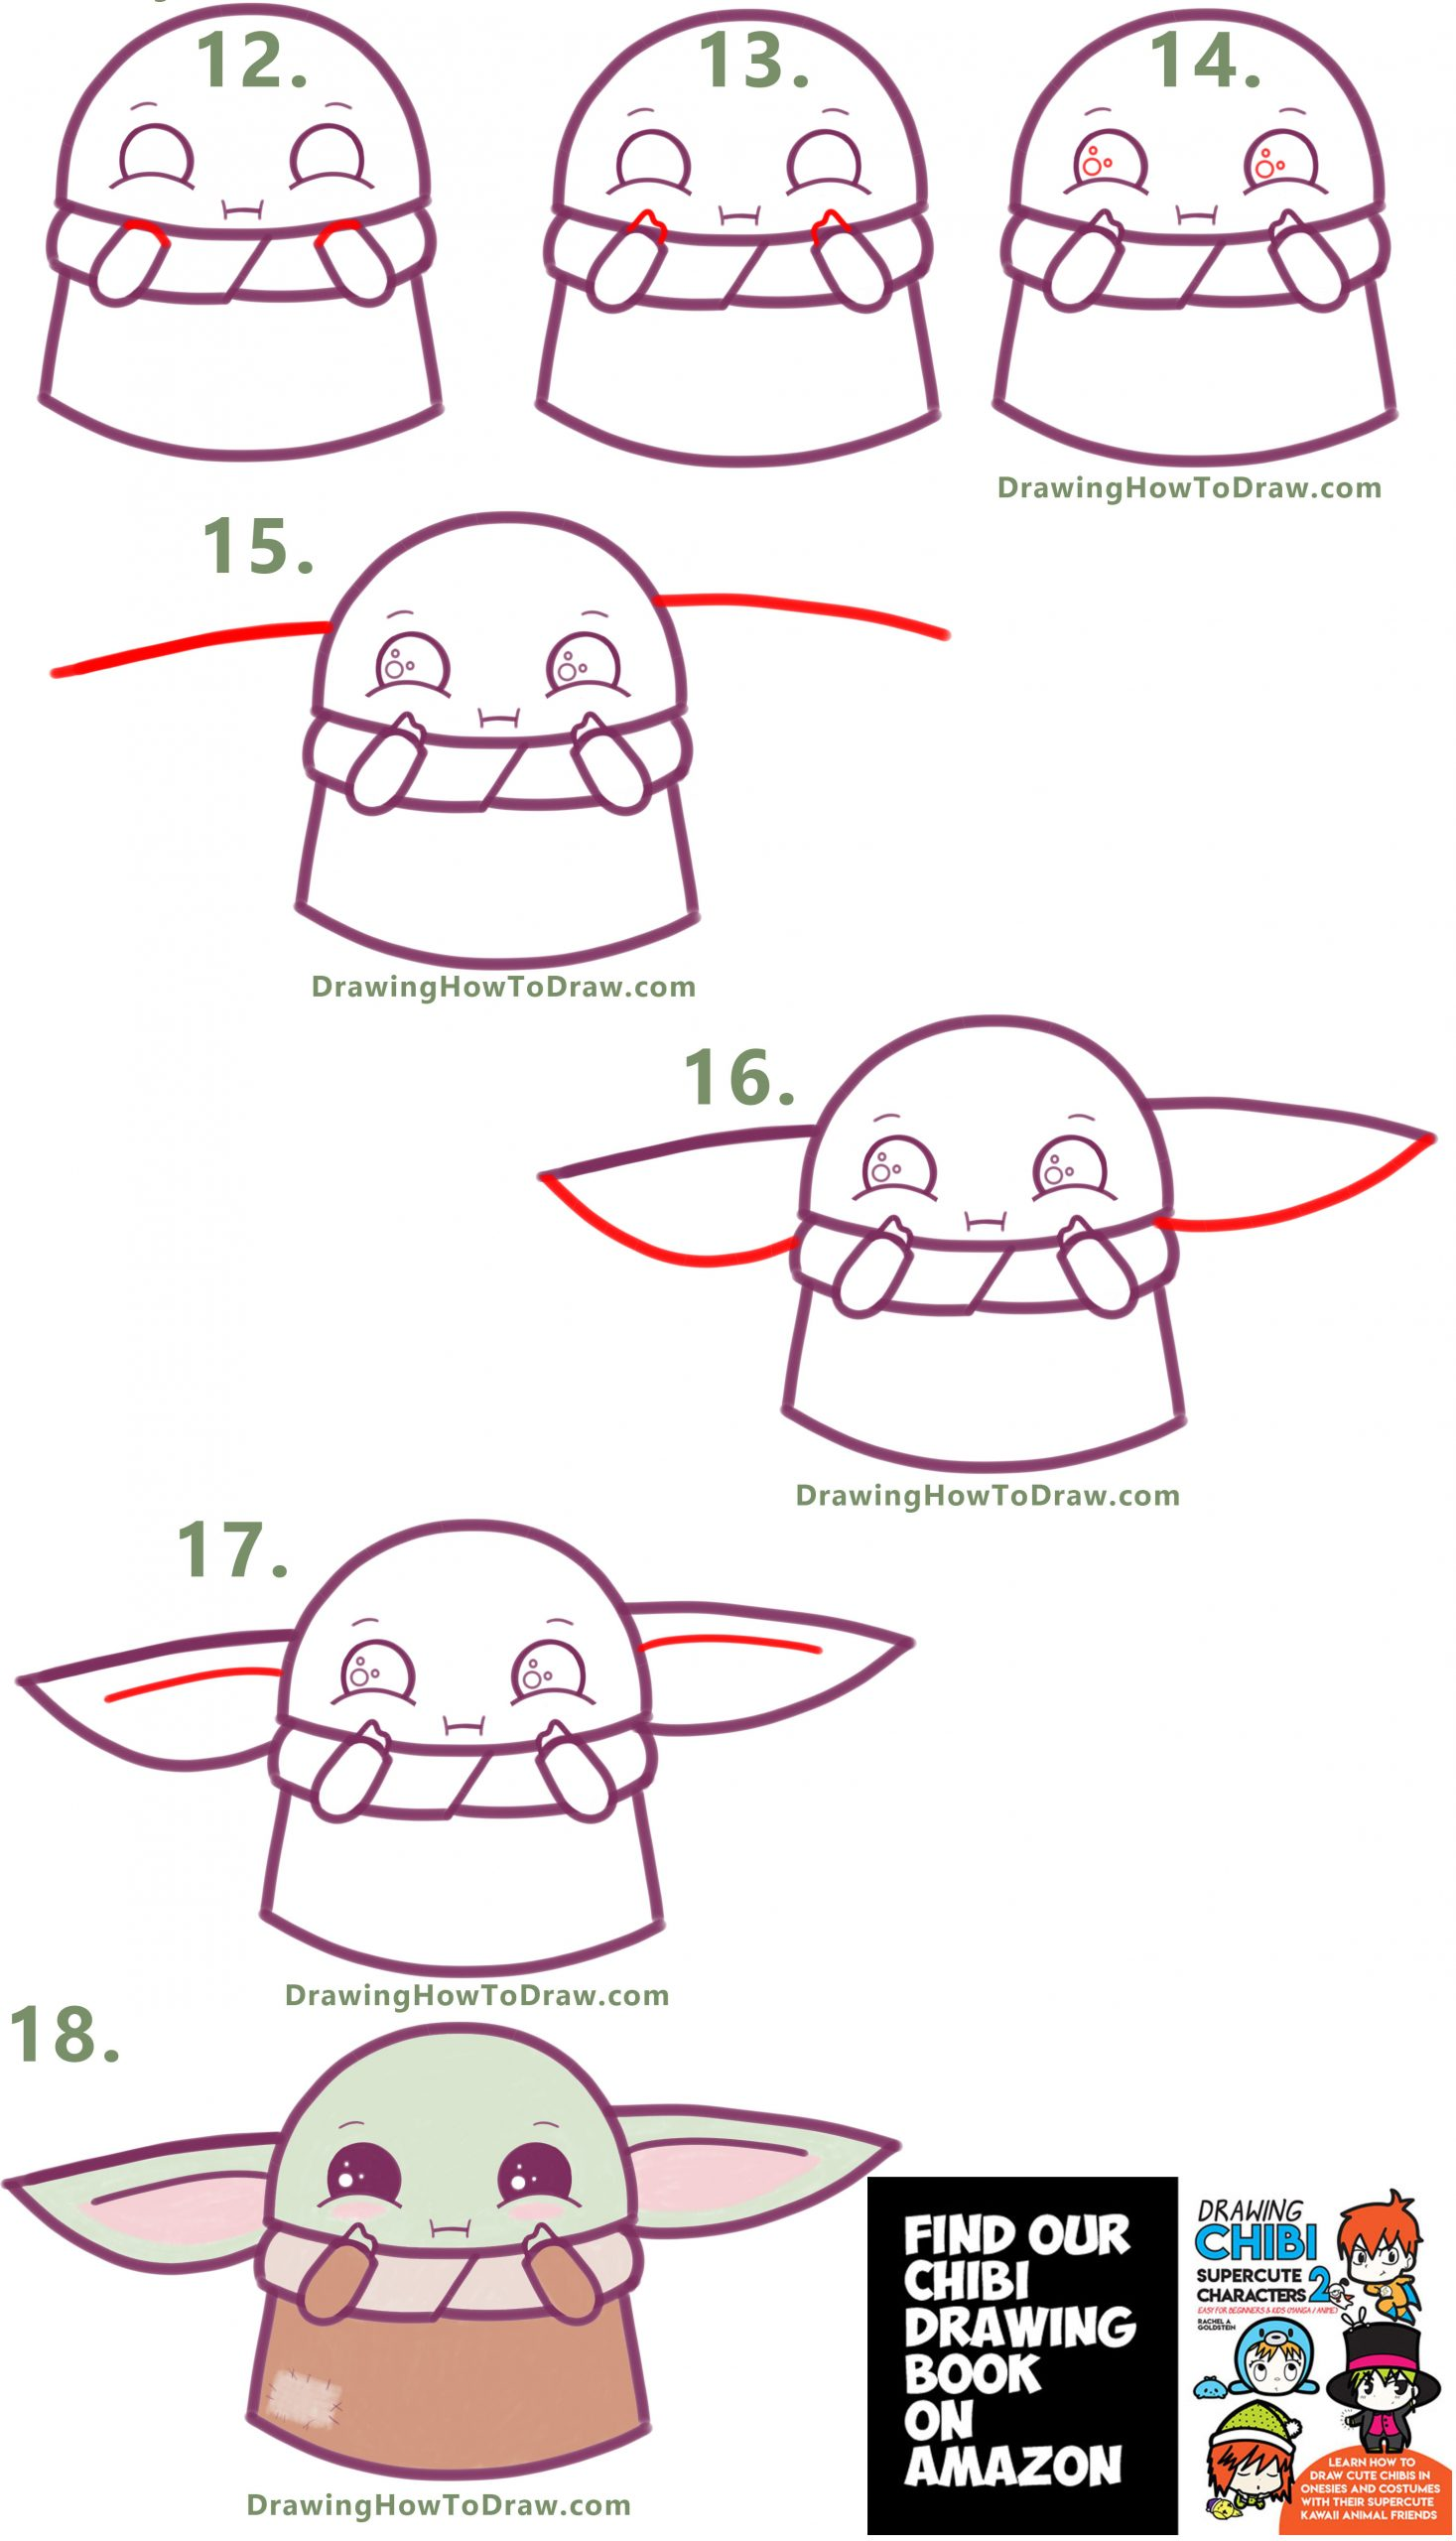 how to draw a cute baby yoda from the mandelorian